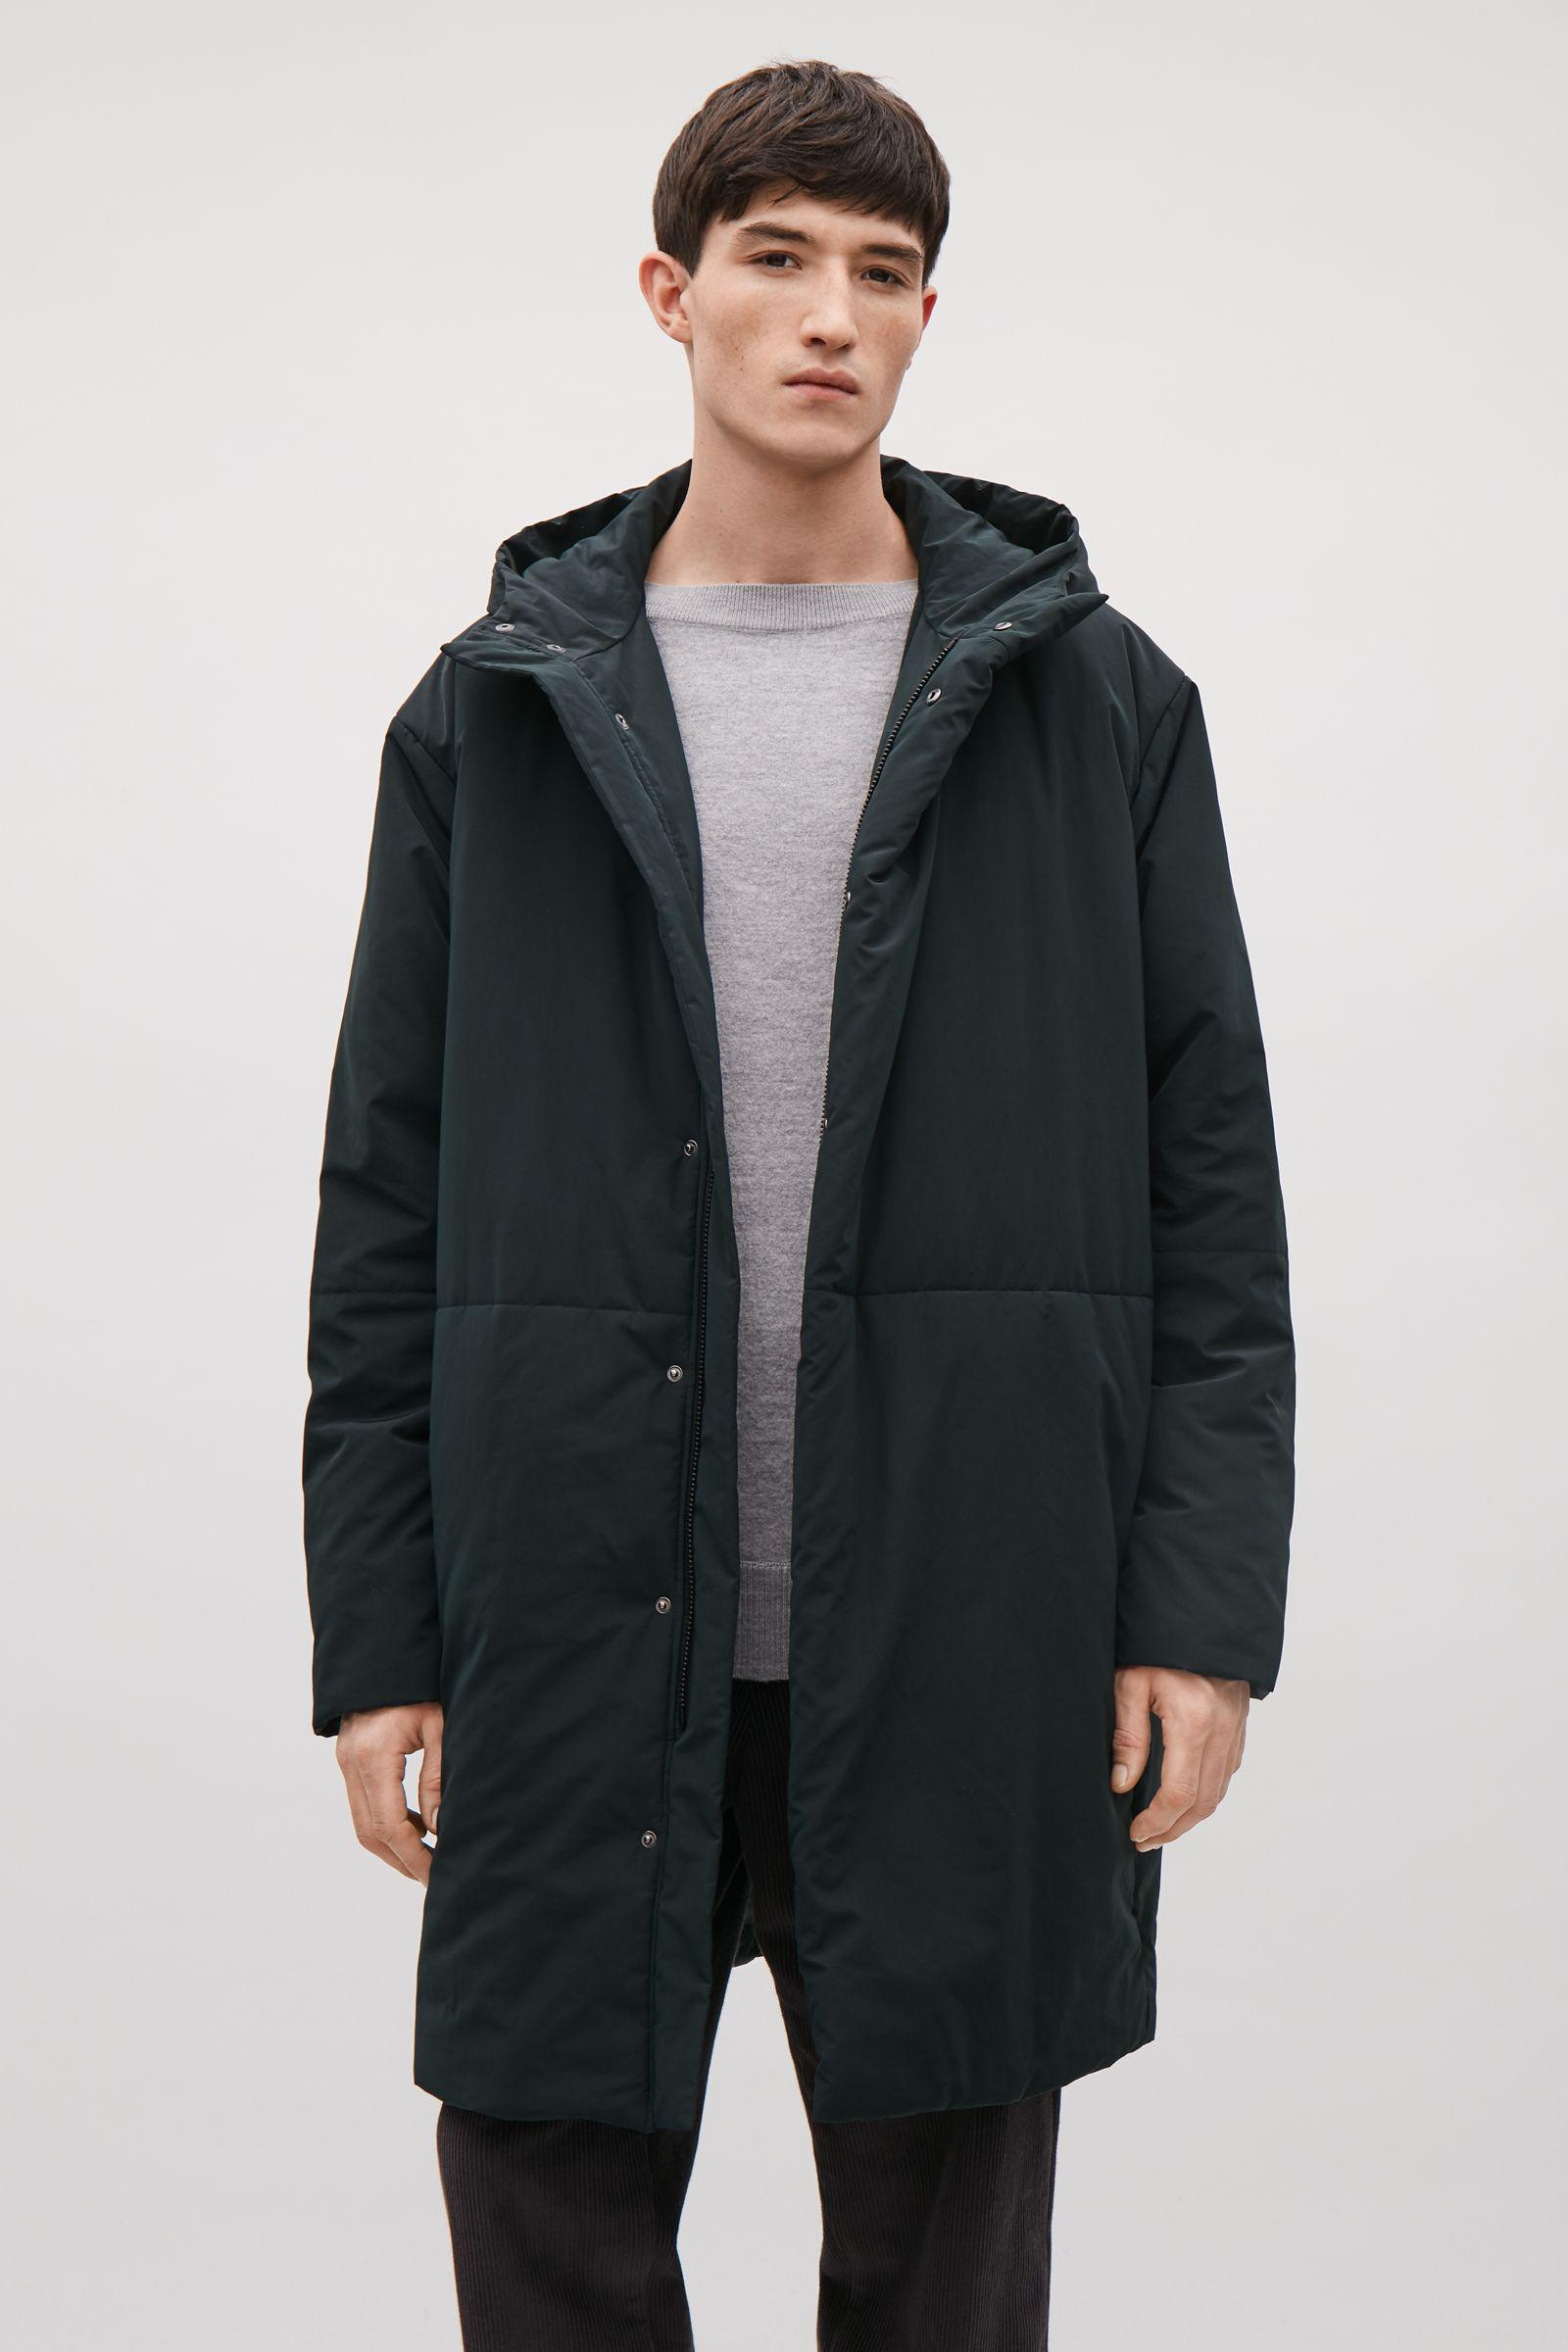 51504bf0208b Lyst - COS Long Padded Coat in Green for Men